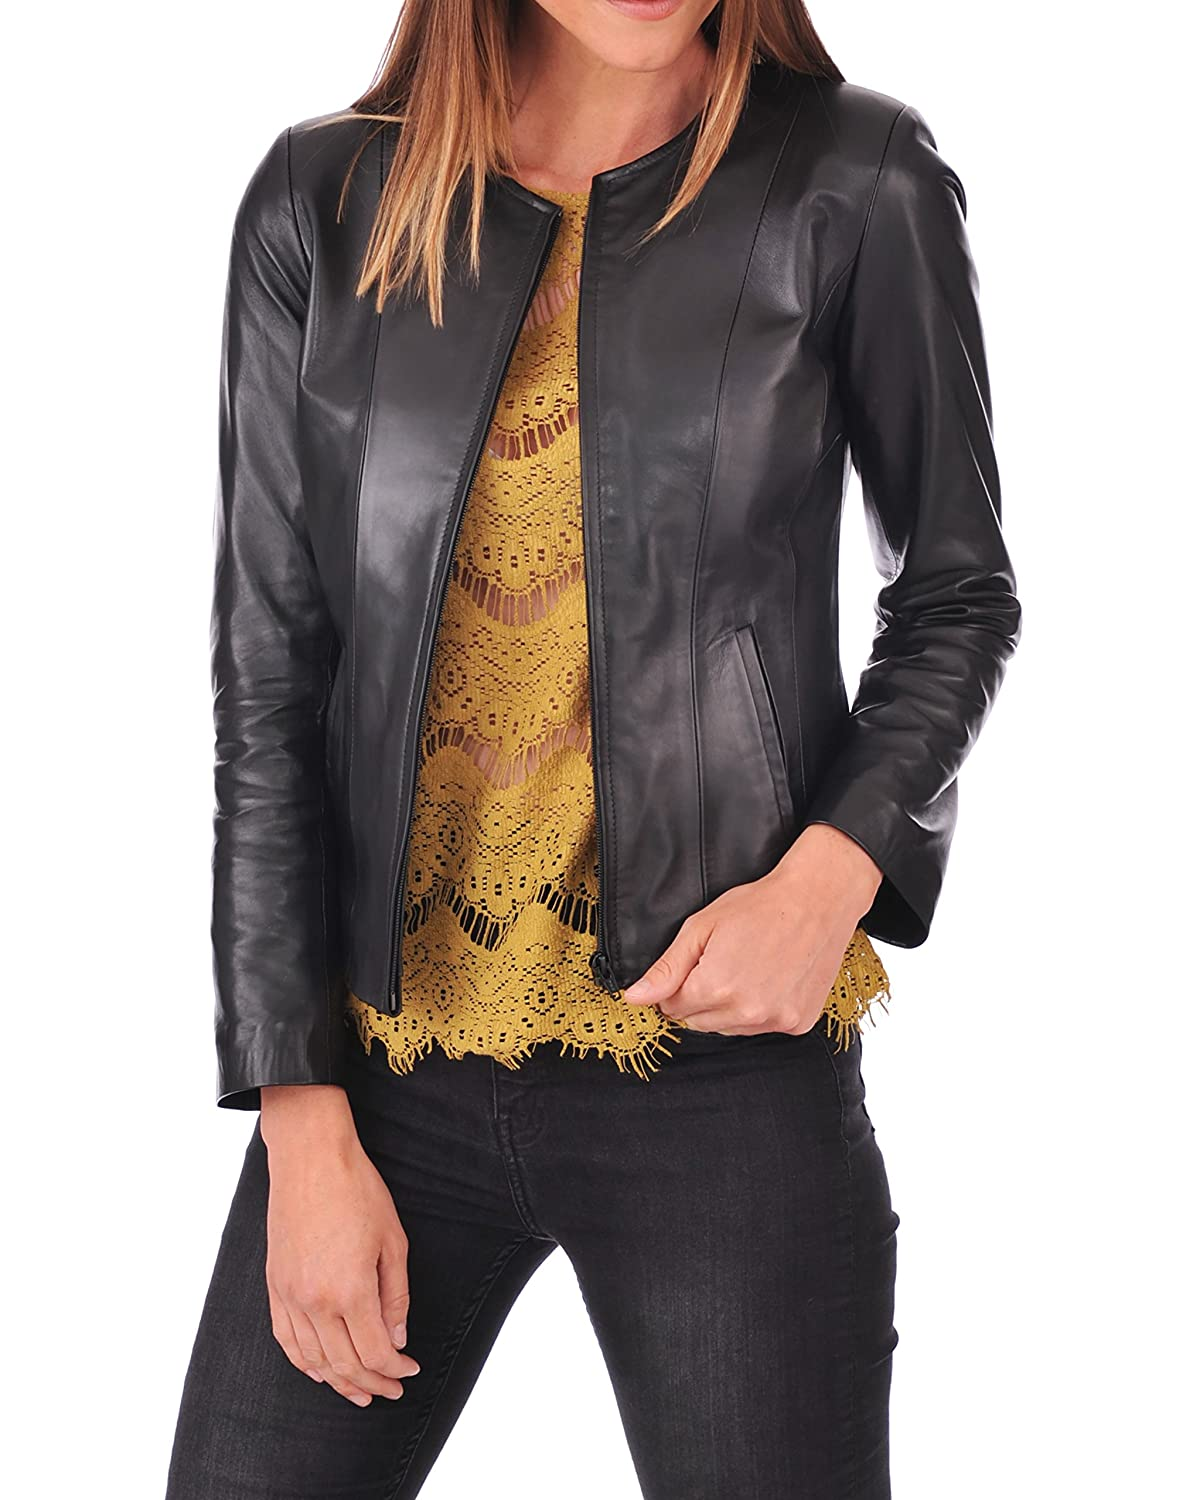 Black43 DOLLY LAMB 100% Leather Jacket for Women  Collarless Deep Neck & Slim Fit  Moto, Bomber, Biker Winter Casual Wear